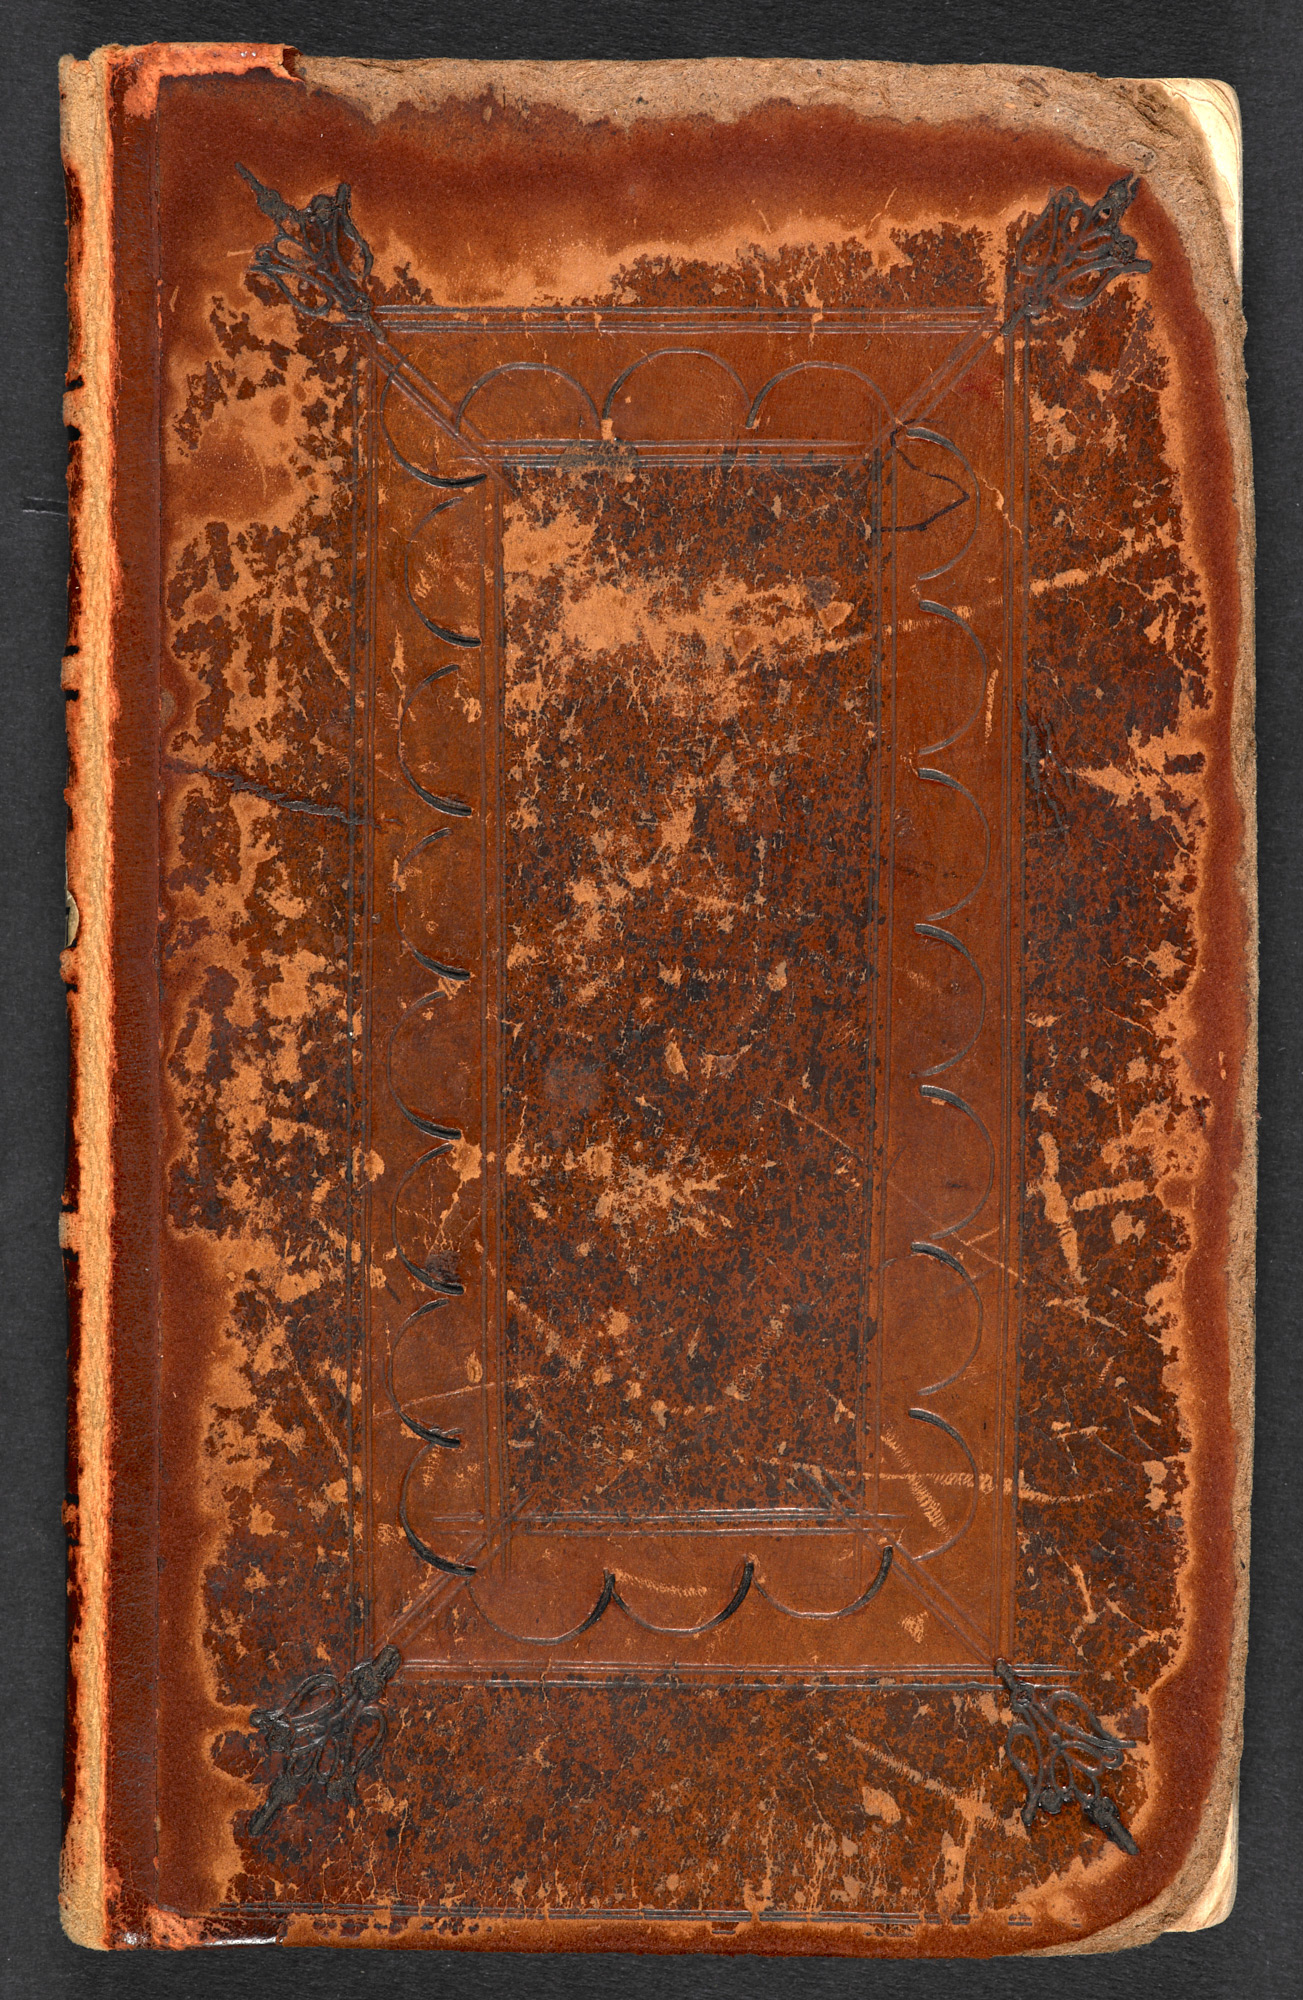 Mary Astell's Reflections Upon Marriage